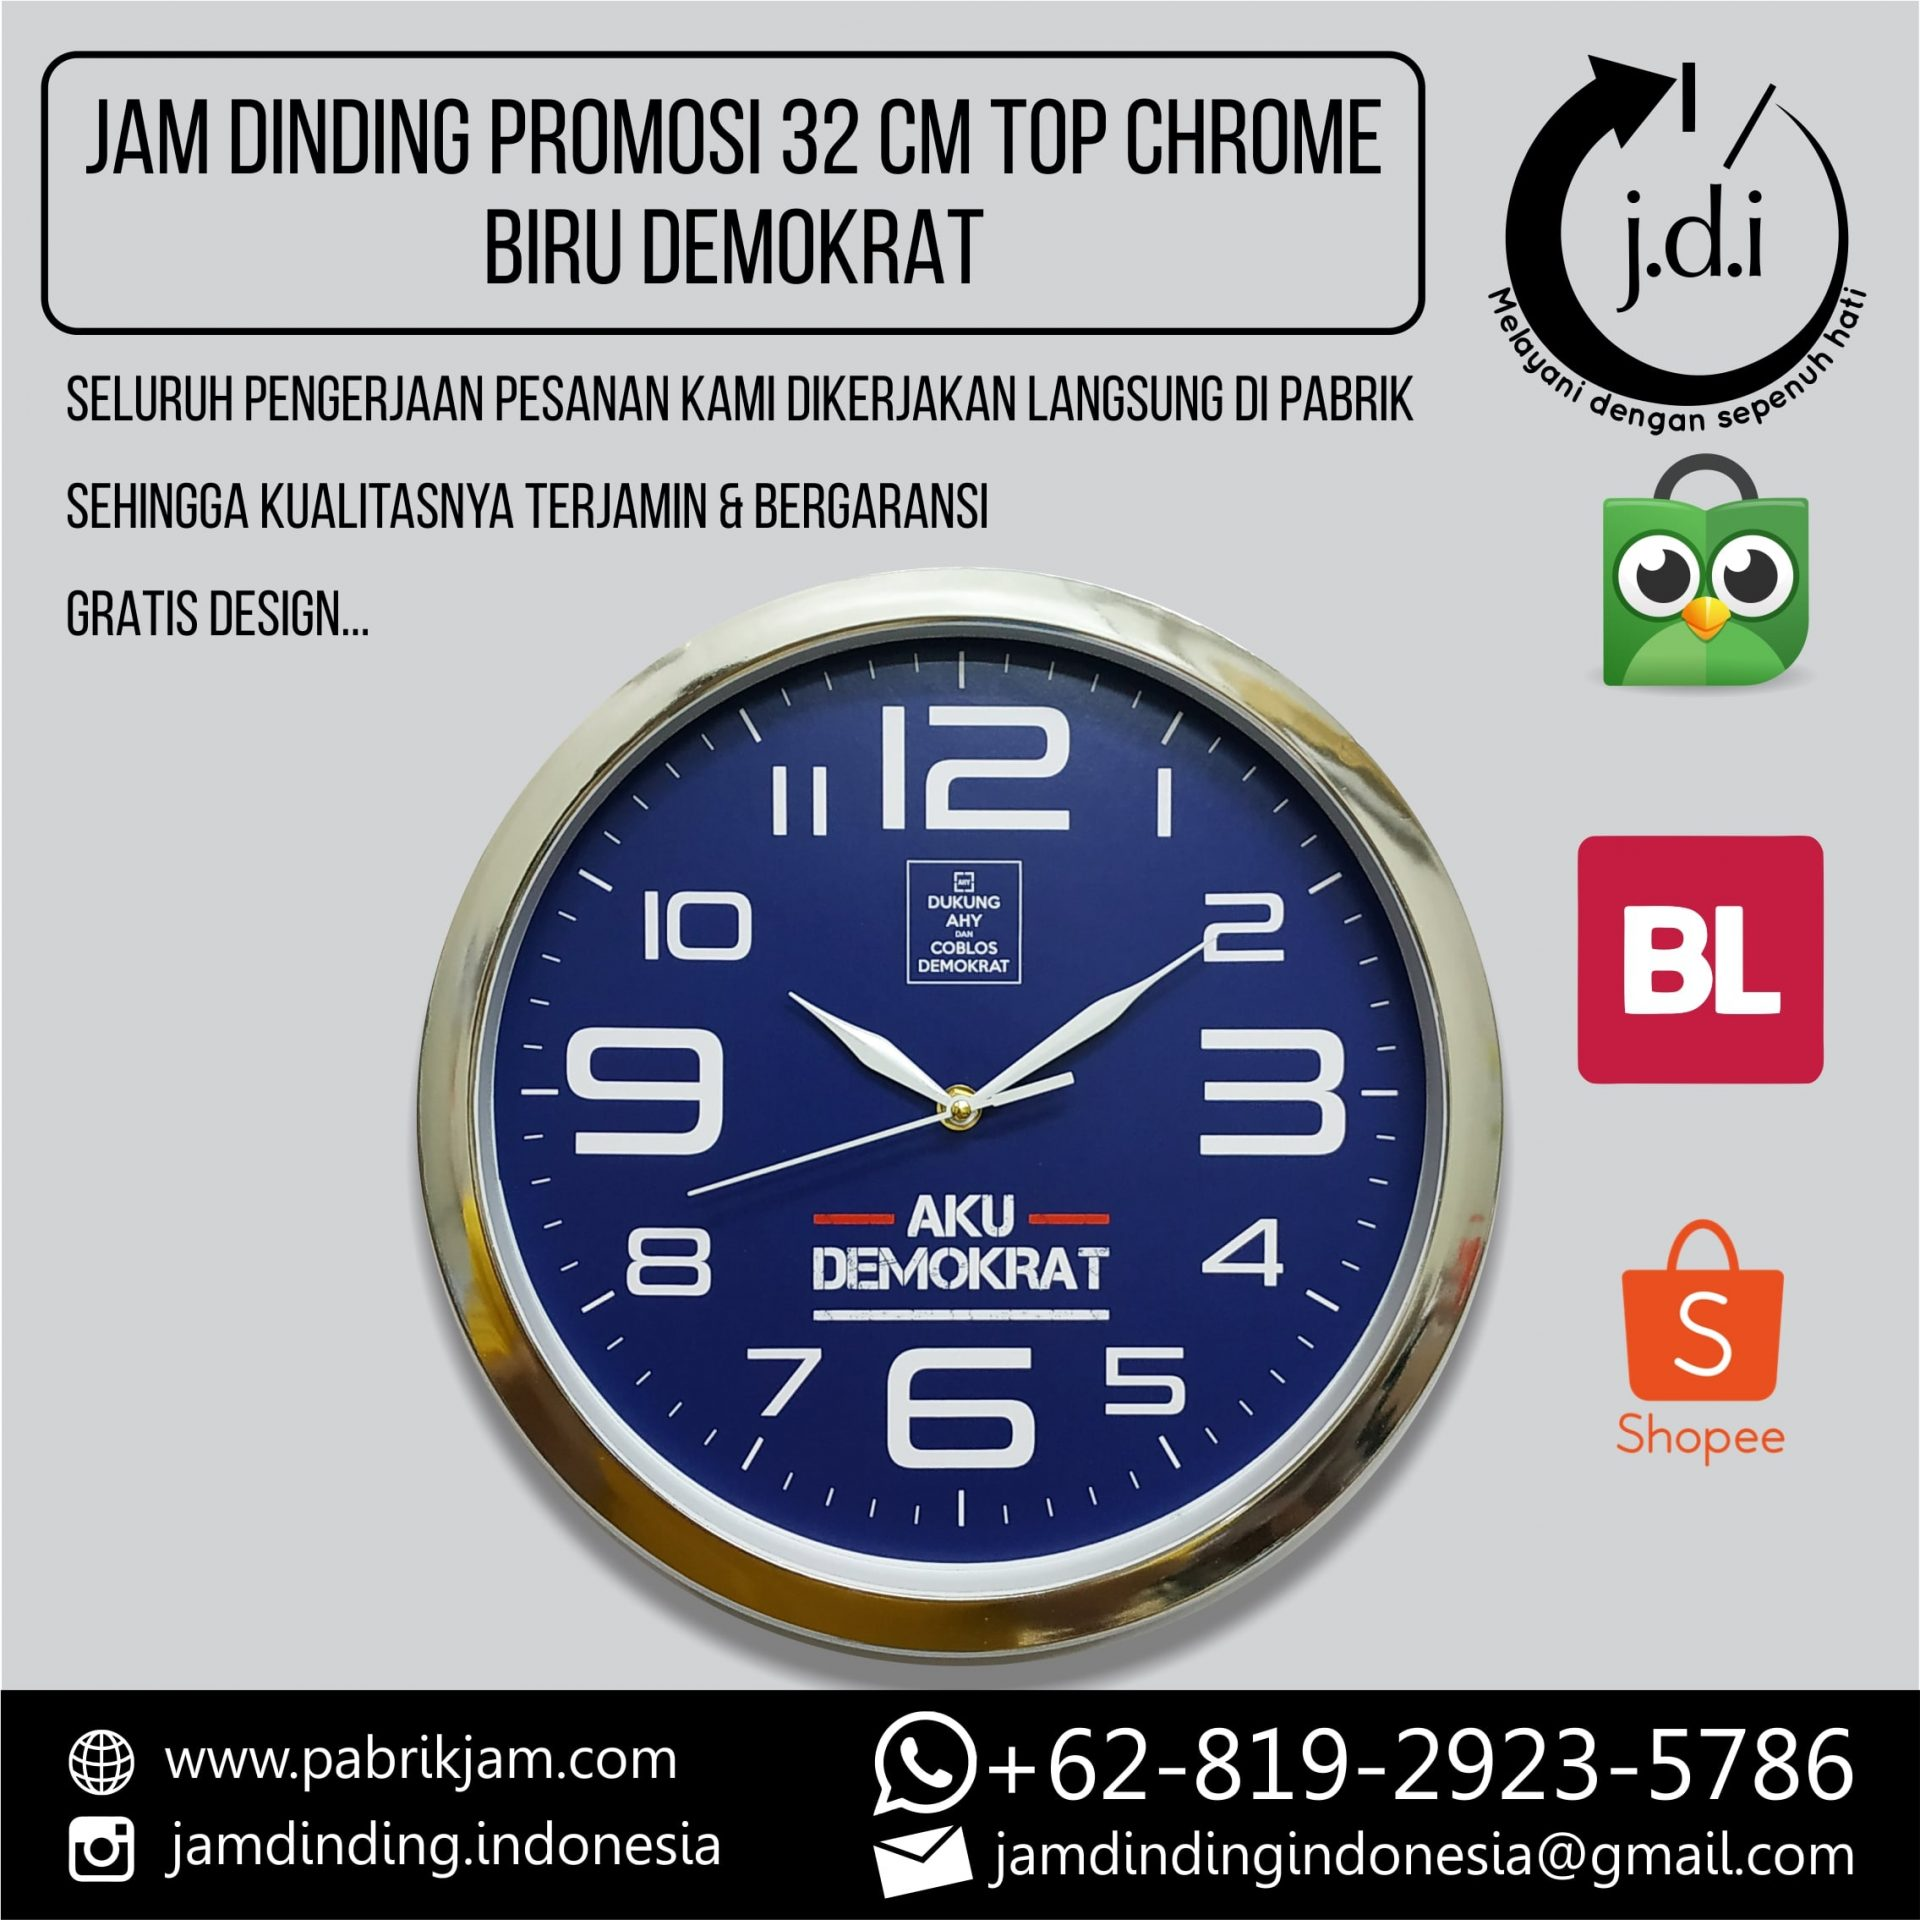 JAM DINDING PROMOSI 32 CM TOP CHROME BIRU DEMOKRAT